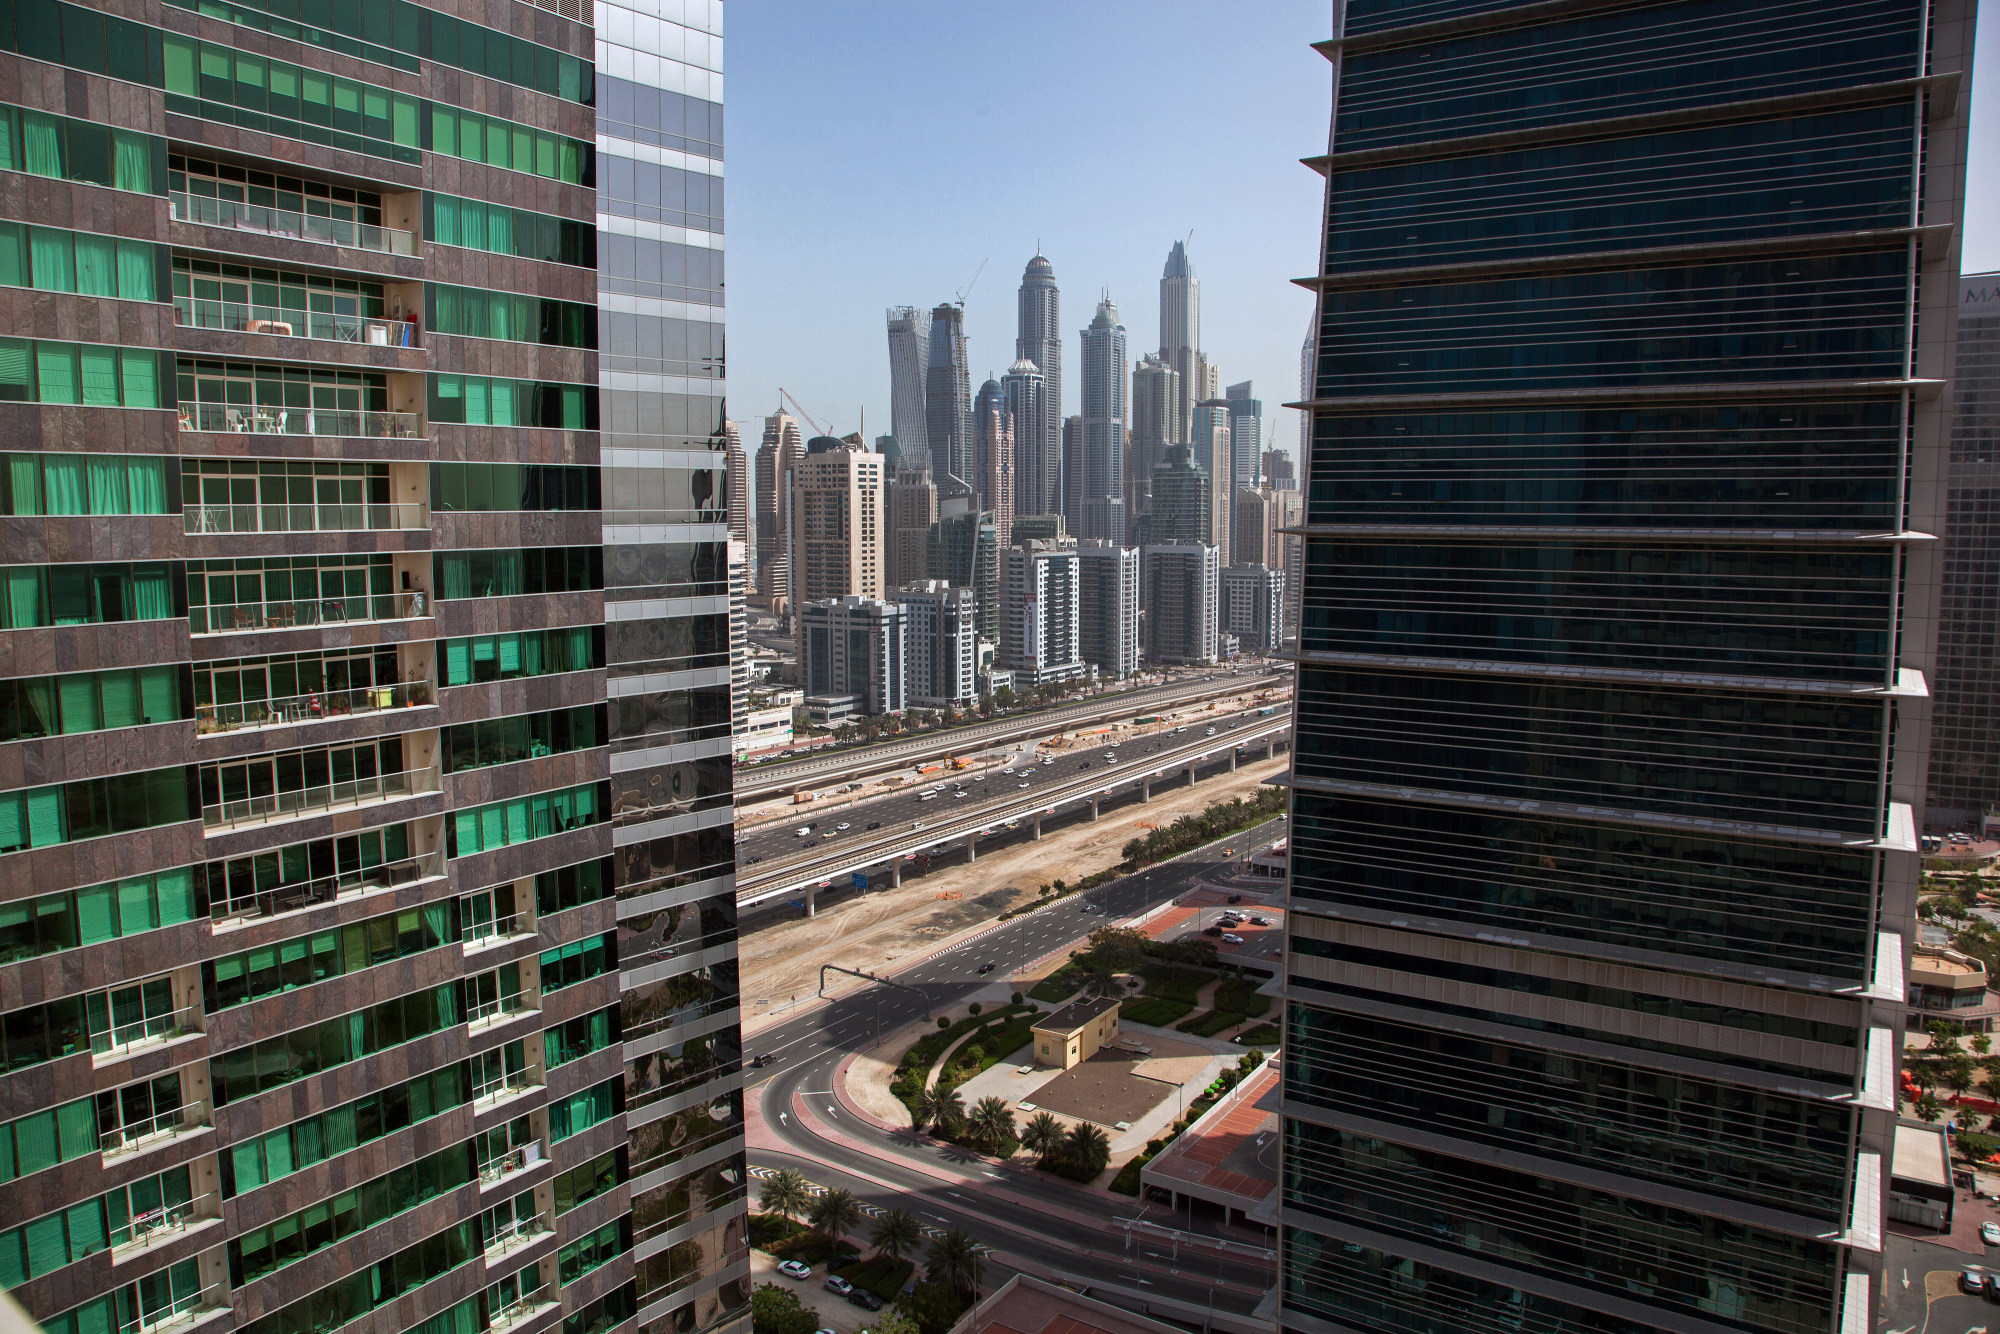 bloomberg.com - Filipe Pacheco - Looking for Cheap Real Estate in Dubai? Check The Stock Market